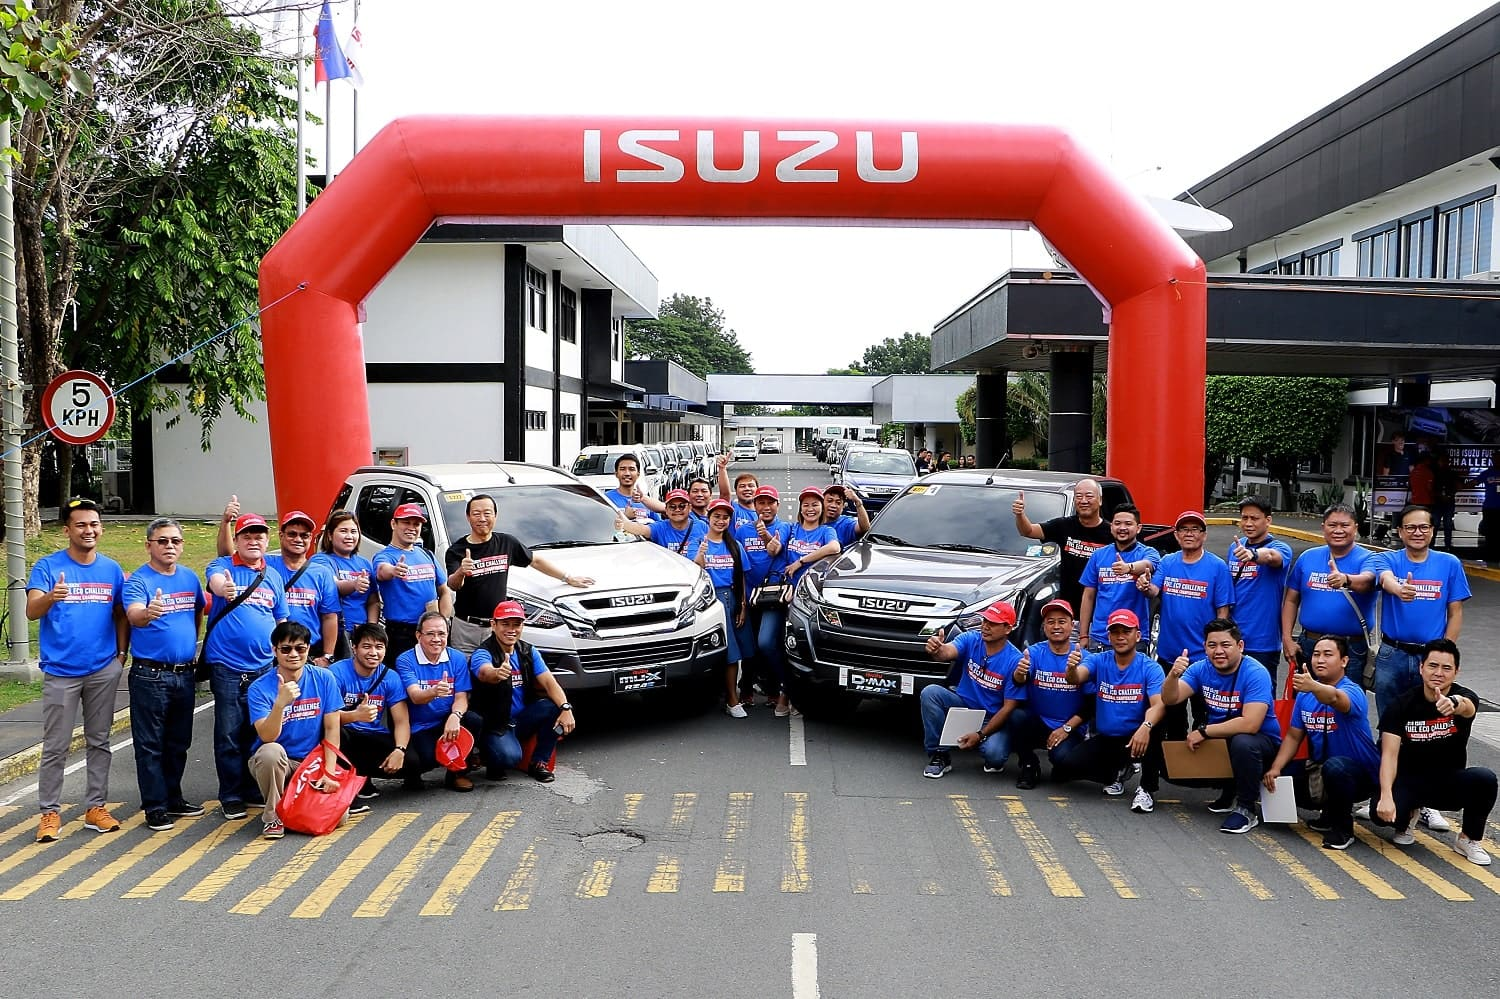 2018 Isuzu RZ4E Bluepower Fuel Eco Challenge Yields 6 Winners